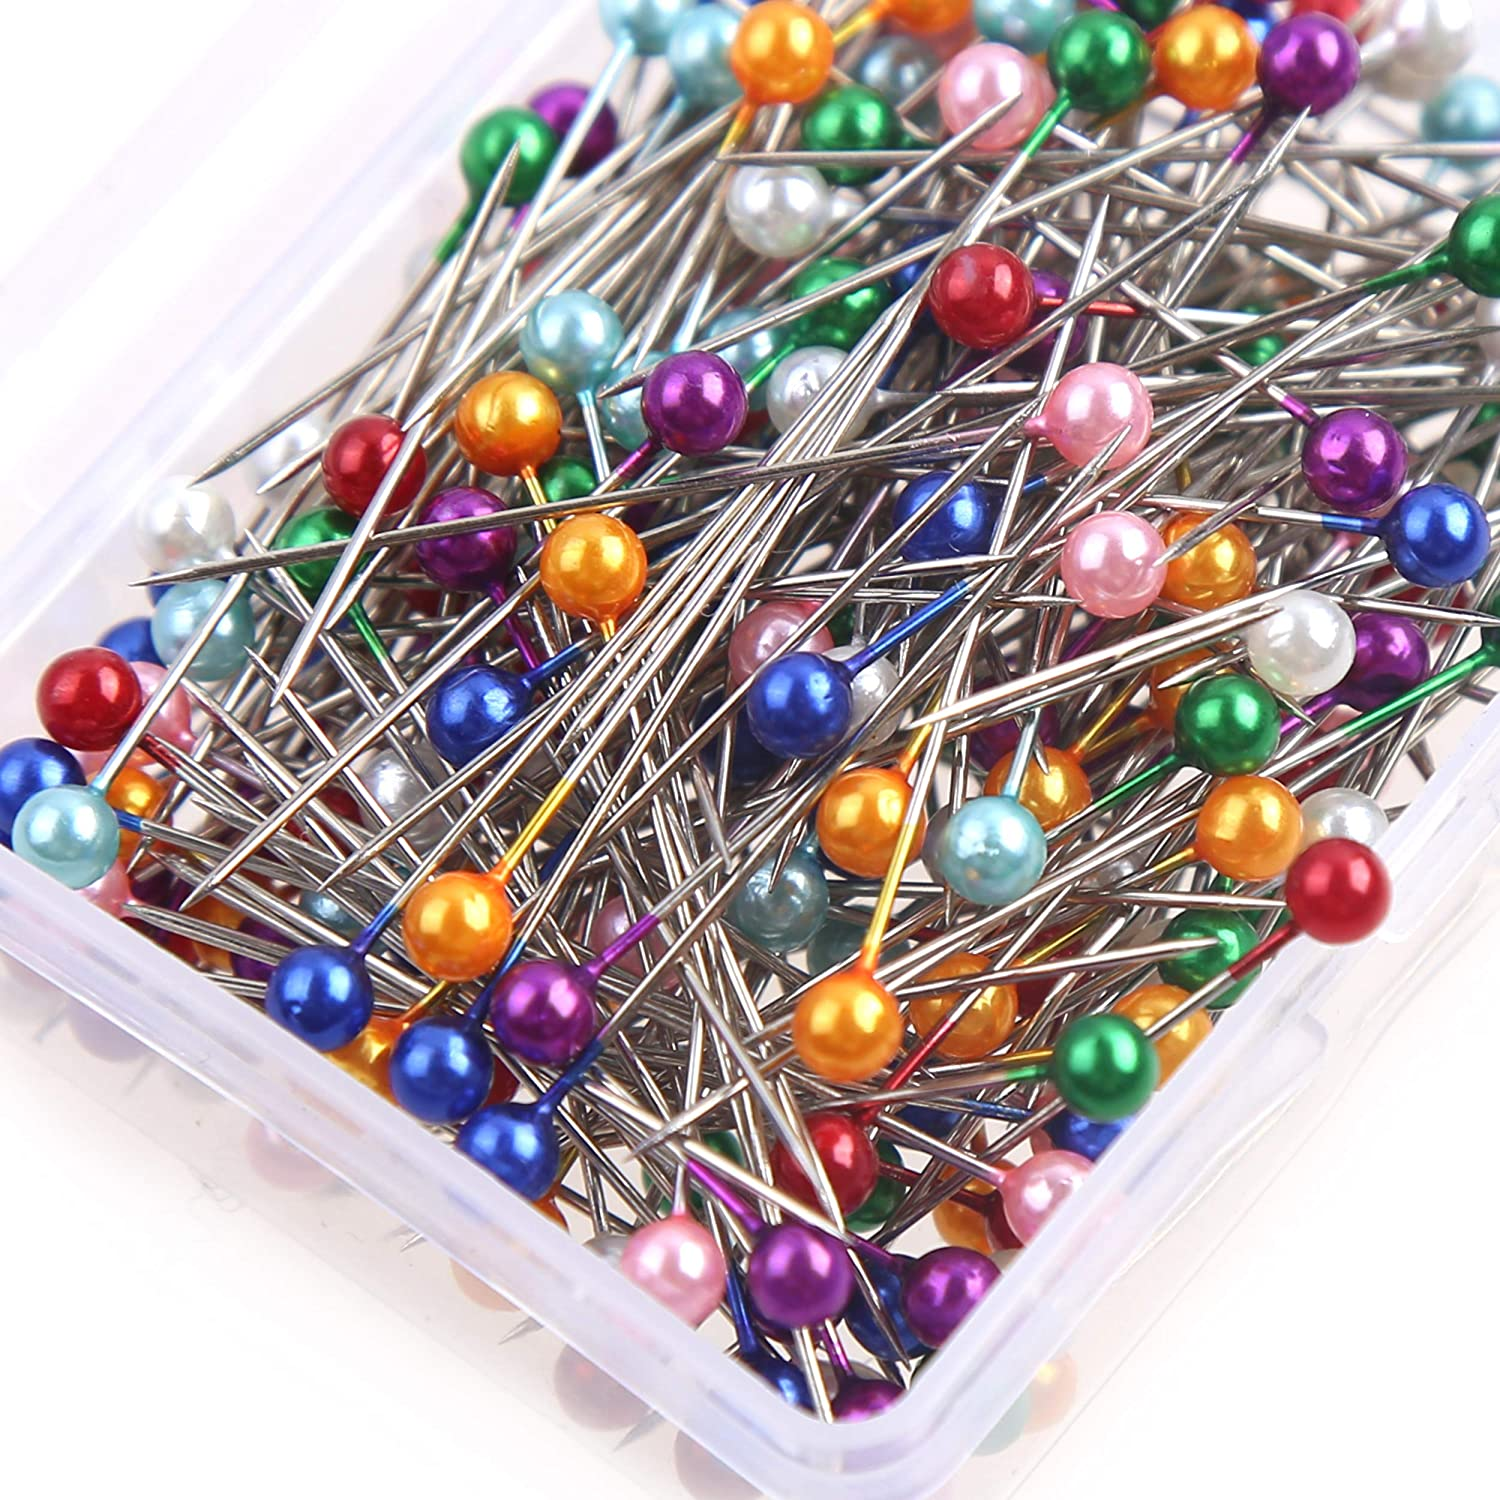 DIYASY 250 Pcs Sewing Pins,1.5 inch Straight Quilting Pins with Plastic Ball Head for Dressmaking with Box.